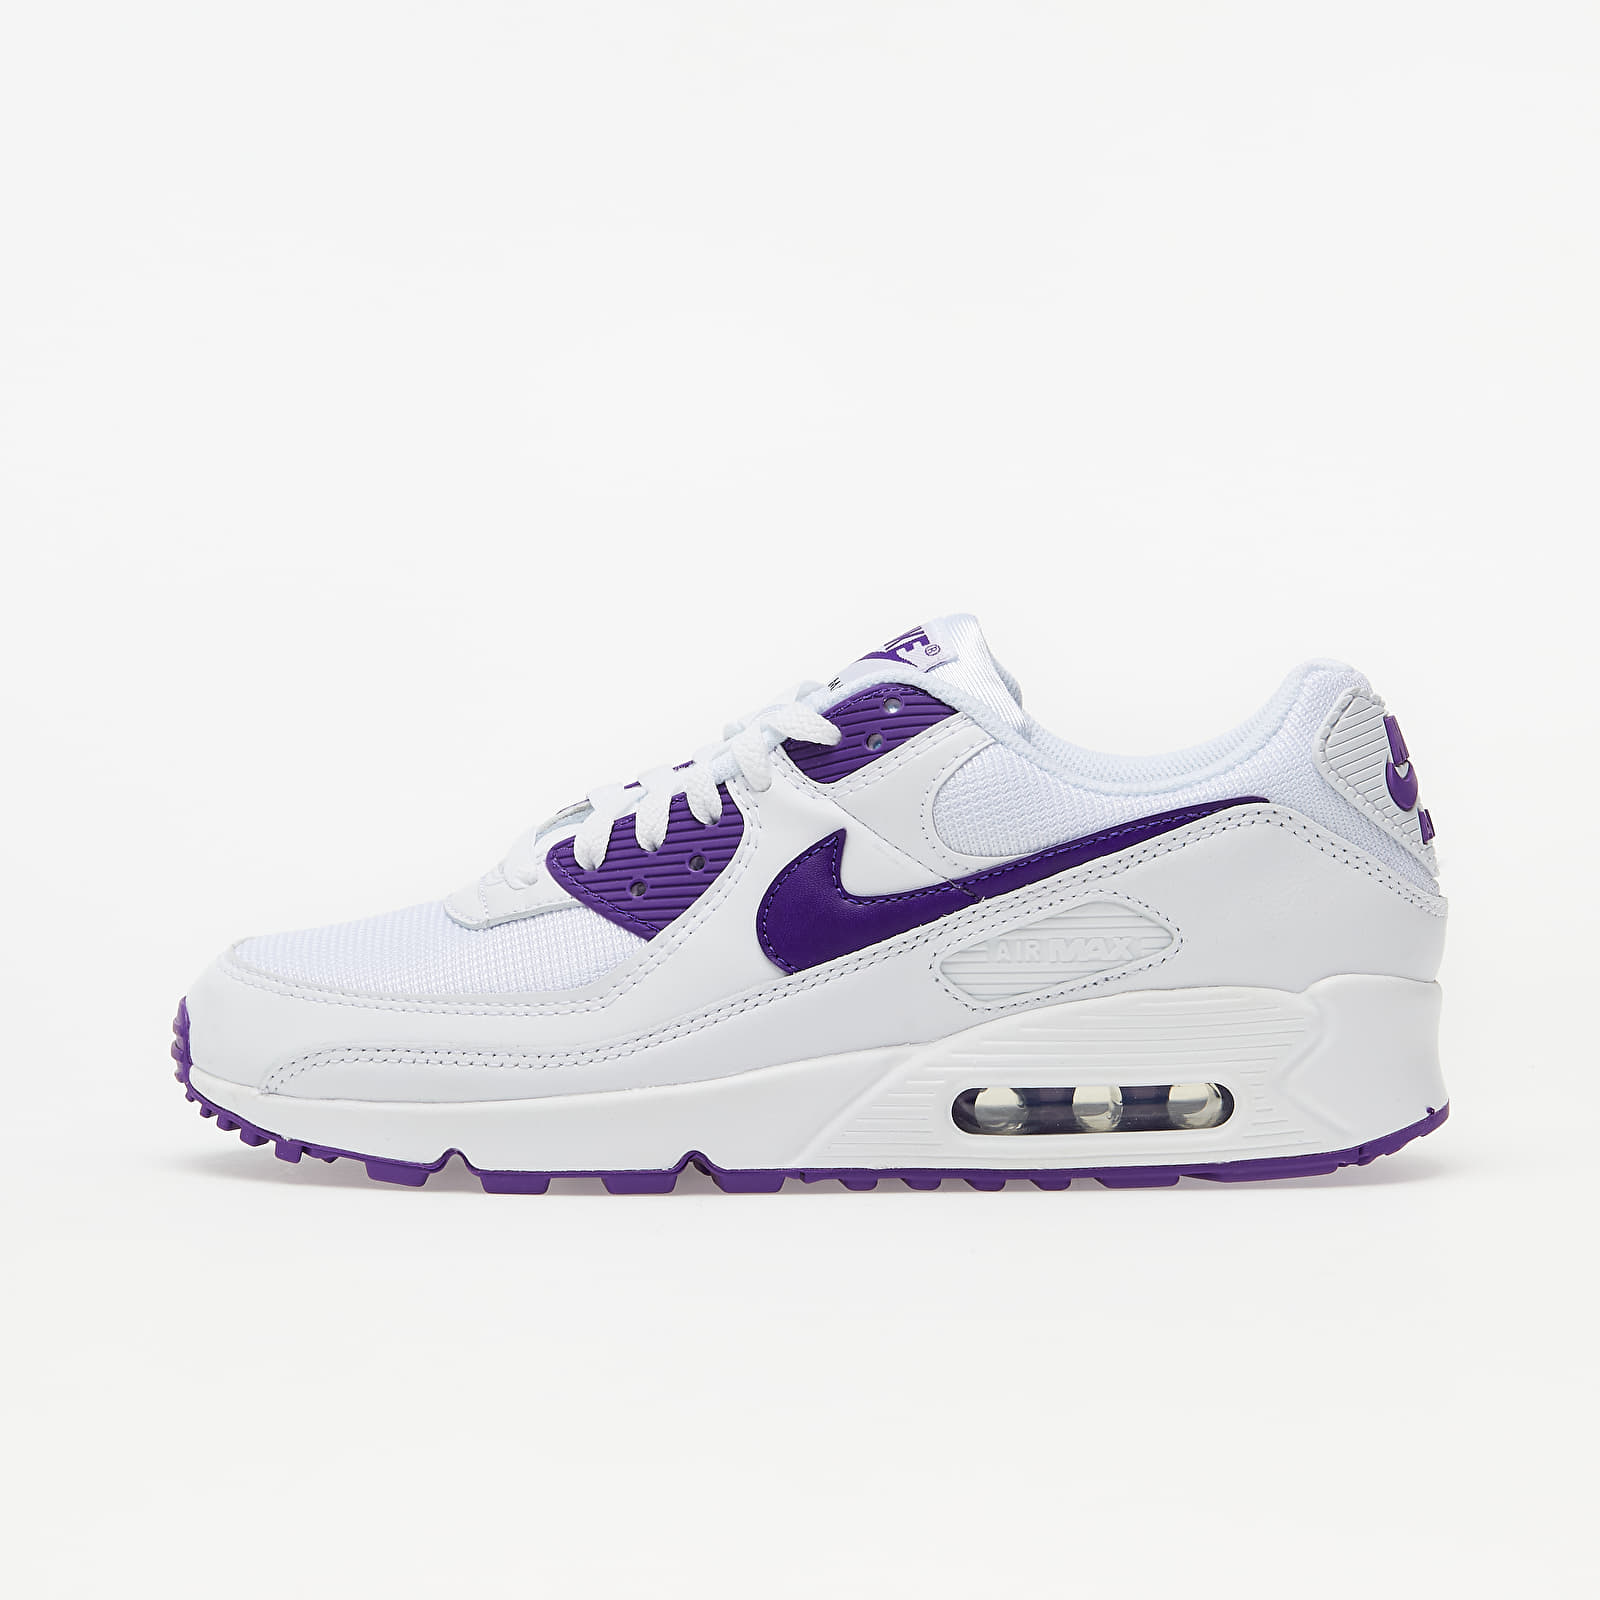 Nike Air Max 90 White/ Voltage Purple-Black CT1028-100